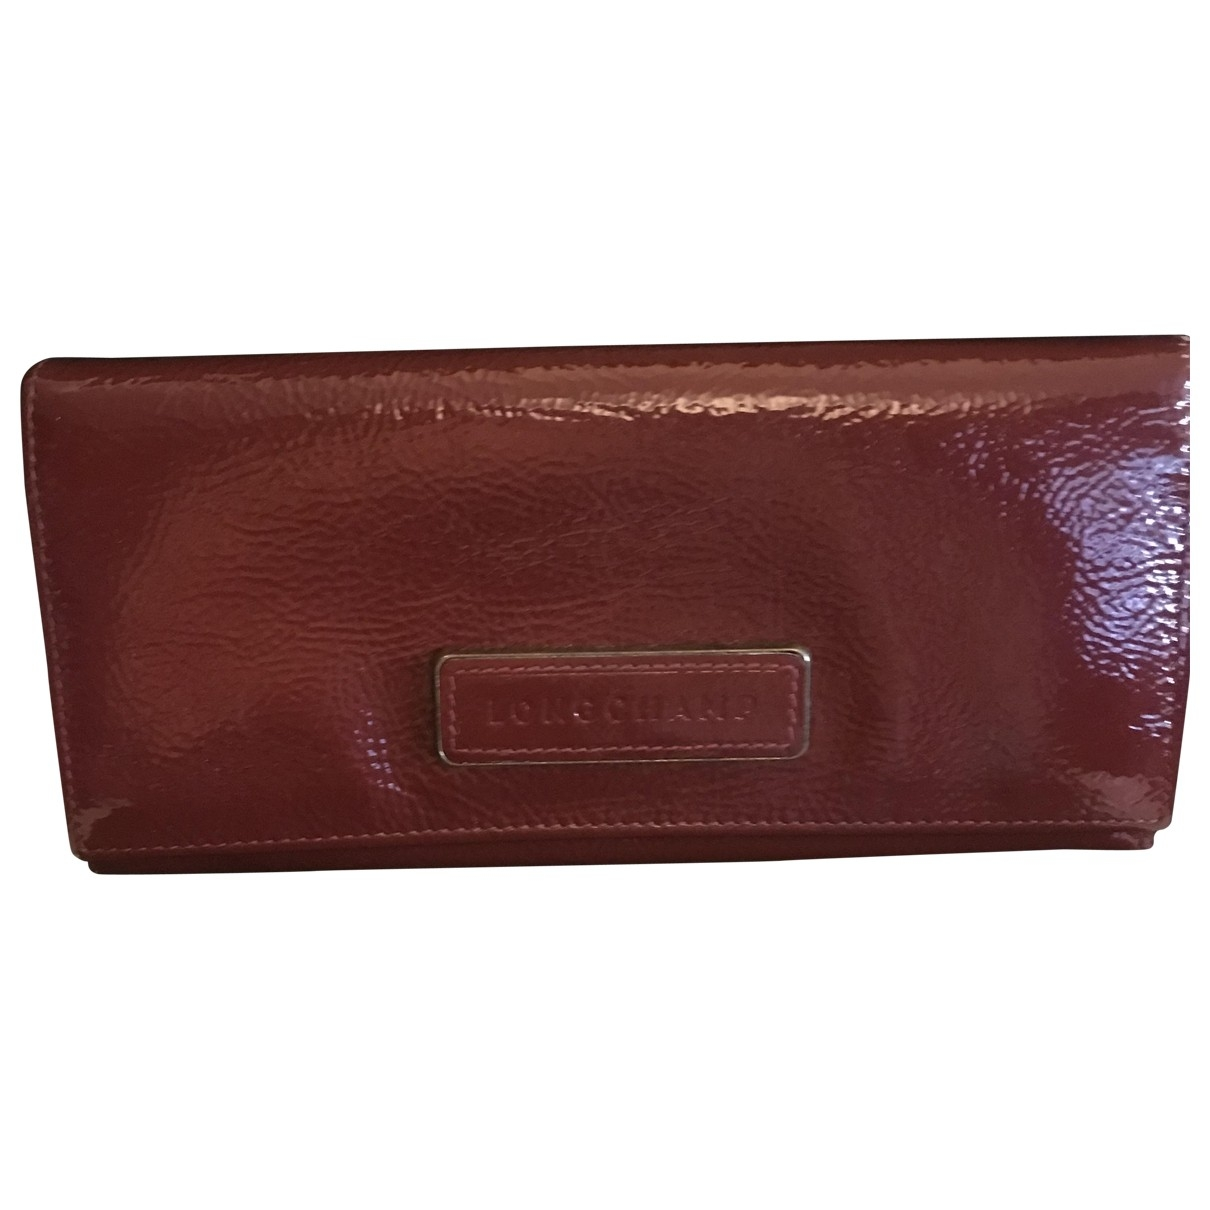 Longchamp \N Red Leather wallet for Women \N